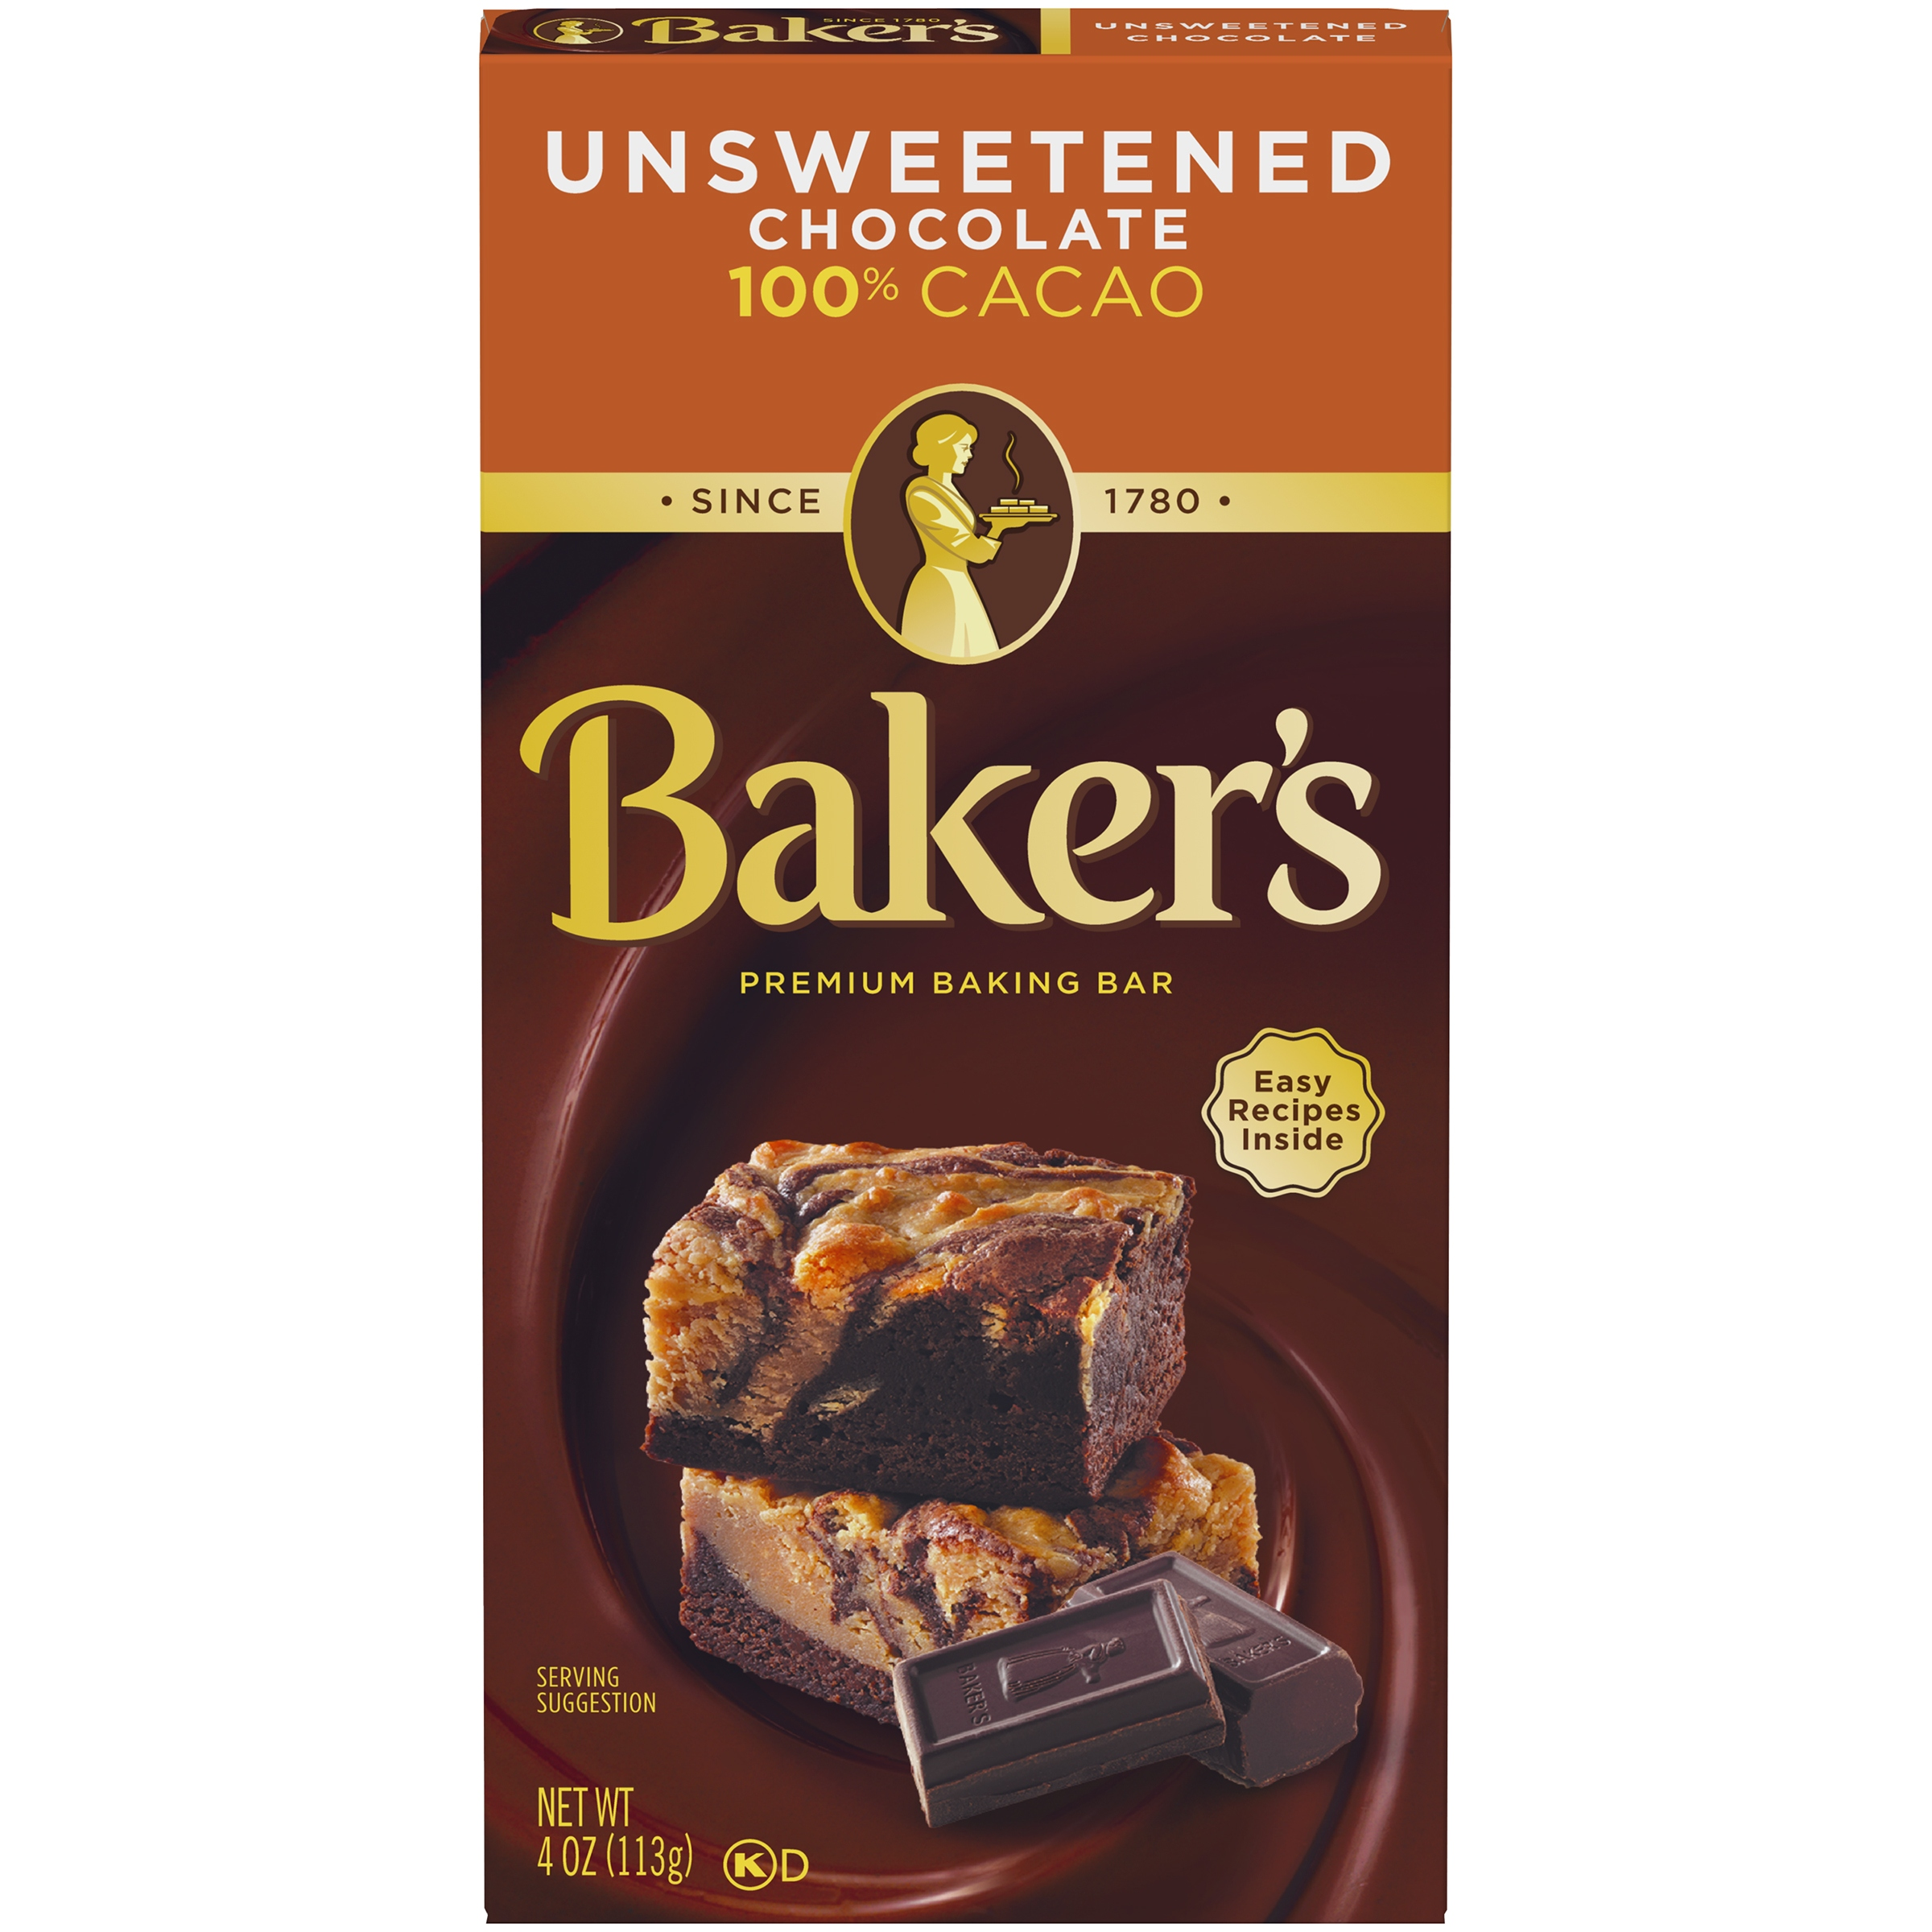 Baker's Unsweetened Chocolate Premium Baking Bar 4 oz. Box